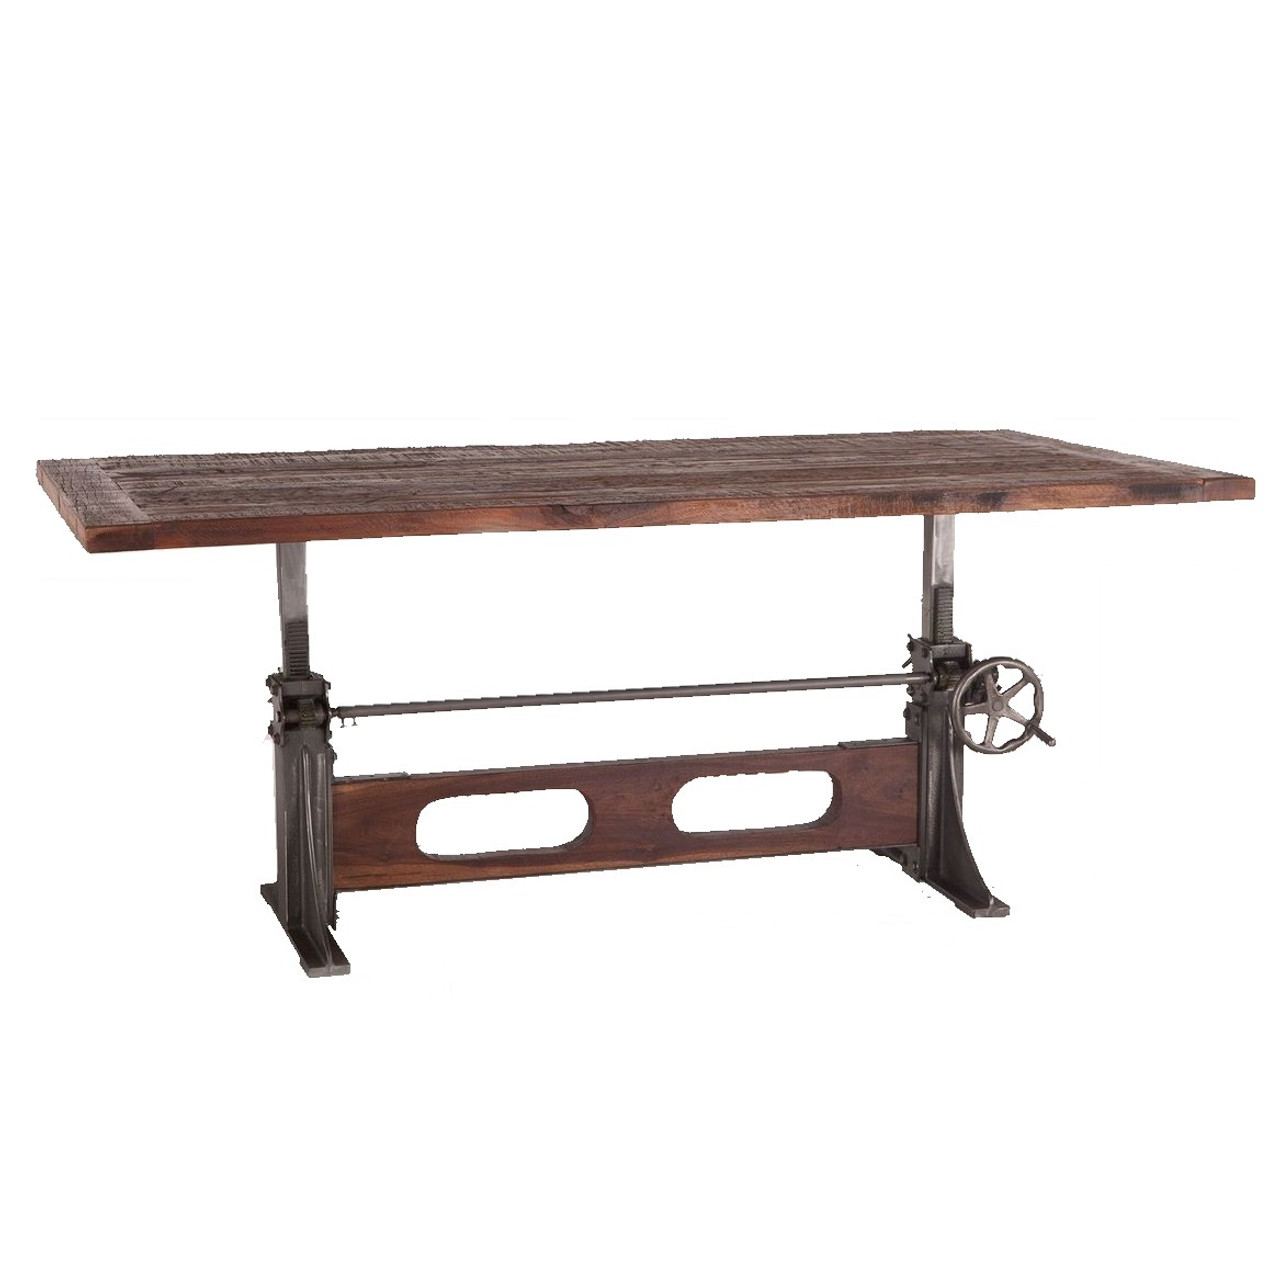 Wondrous Bronx Reclaimed Teak Wood Industrial Crank Dining Table 84 Gmtry Best Dining Table And Chair Ideas Images Gmtryco